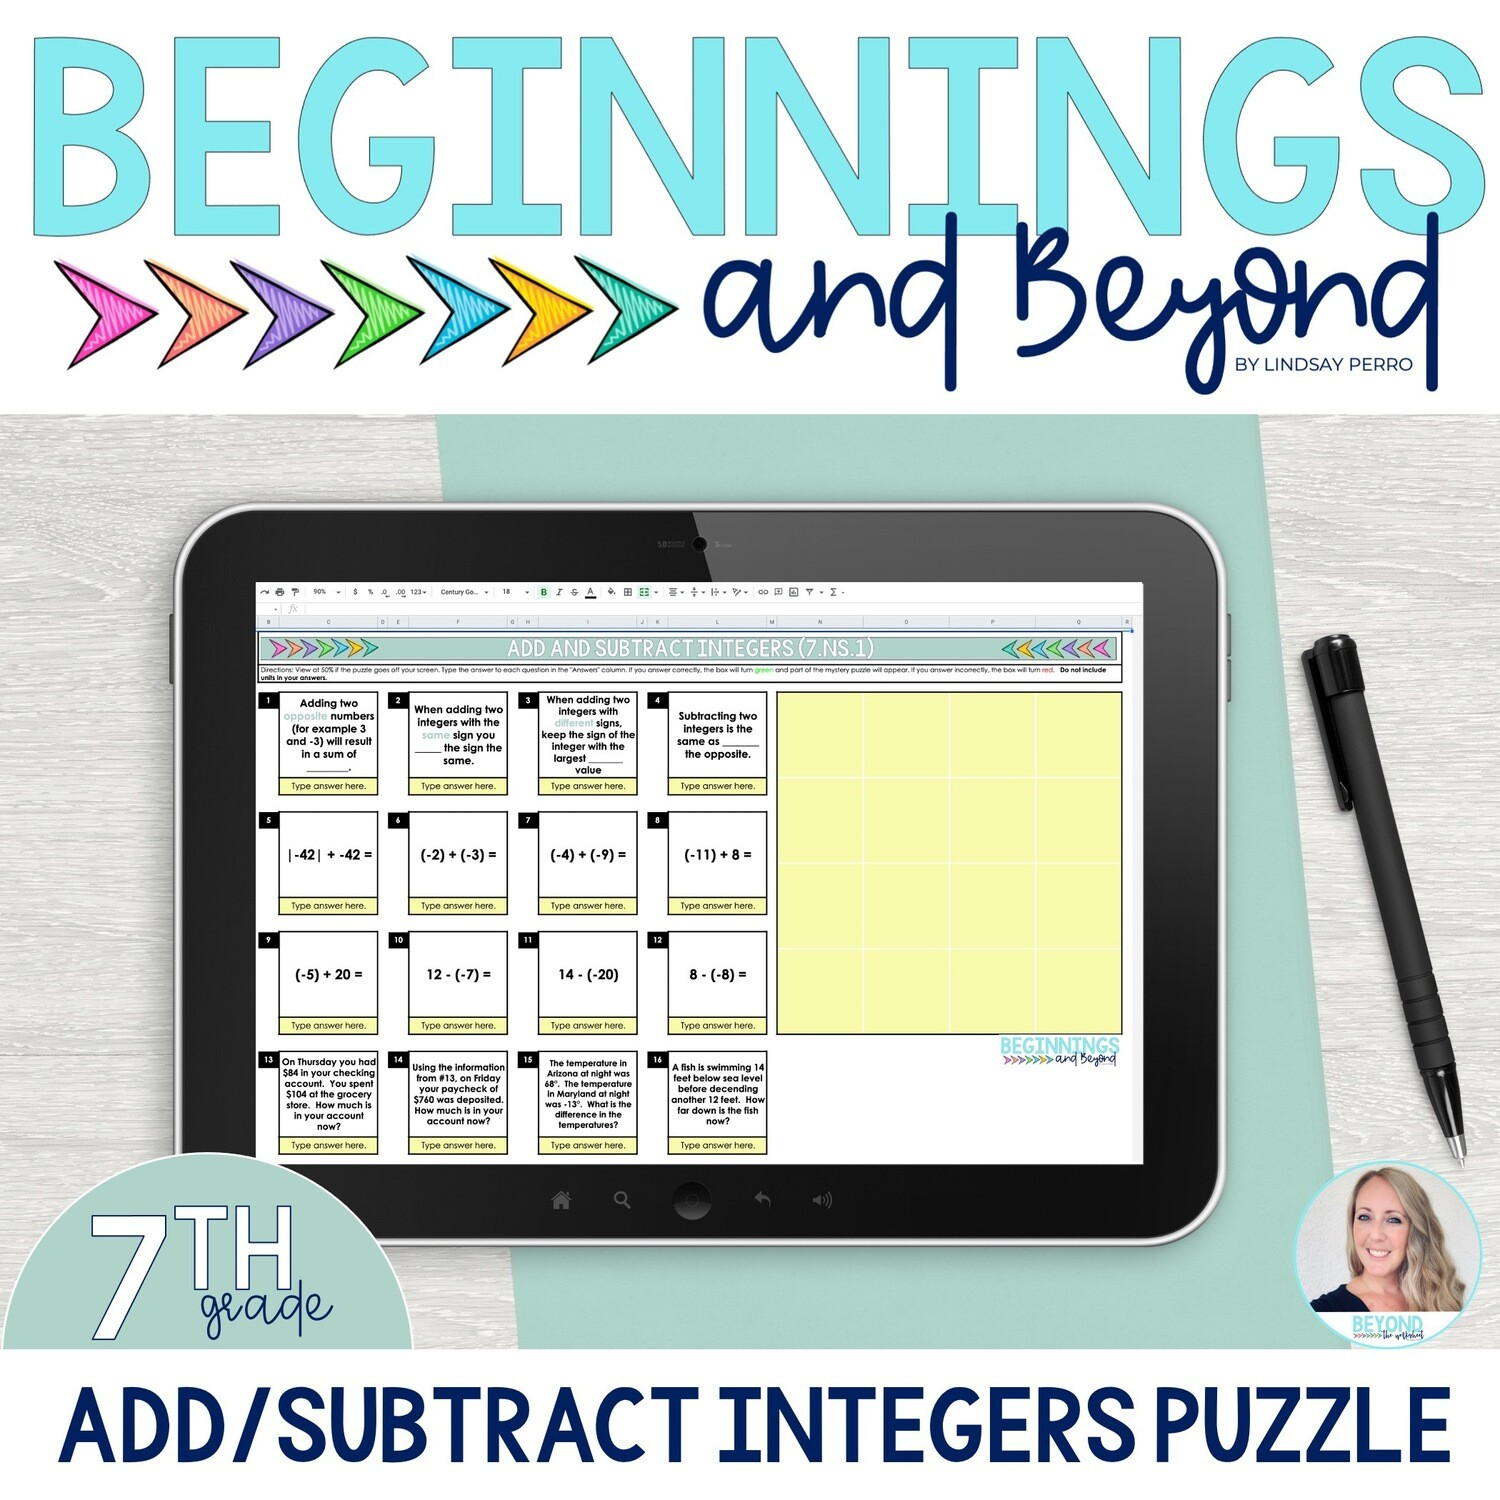 Add and Subtract Integers Digital Puzzle